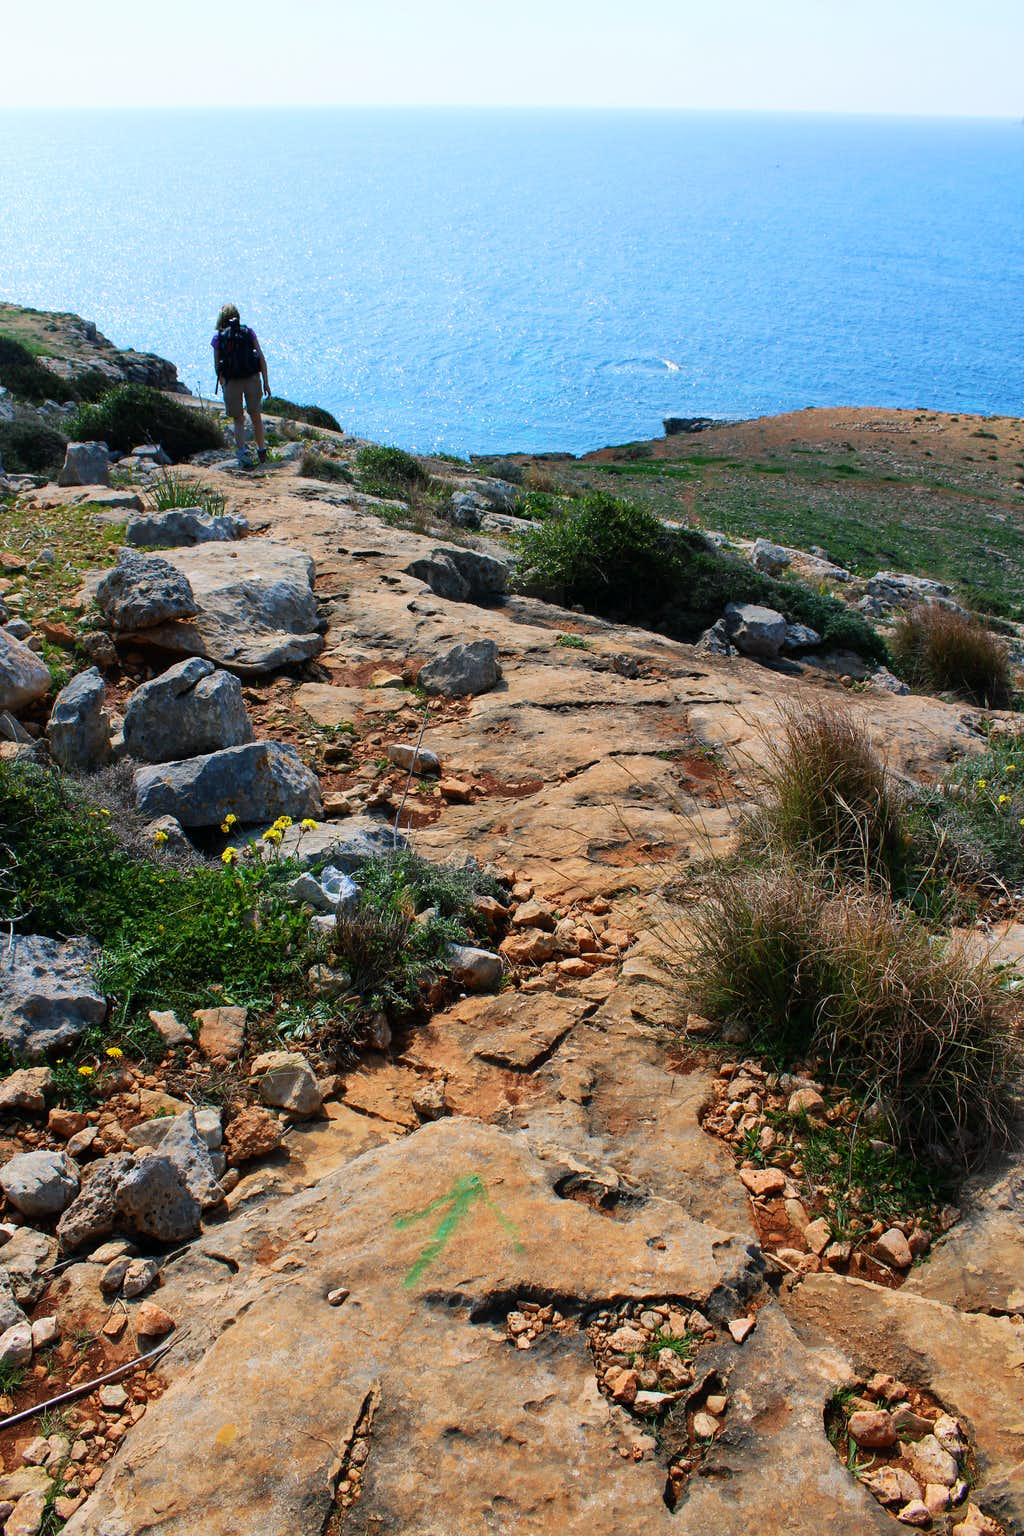 Hiking Malta's coastal paths, often the only guidance is a painted arrow!